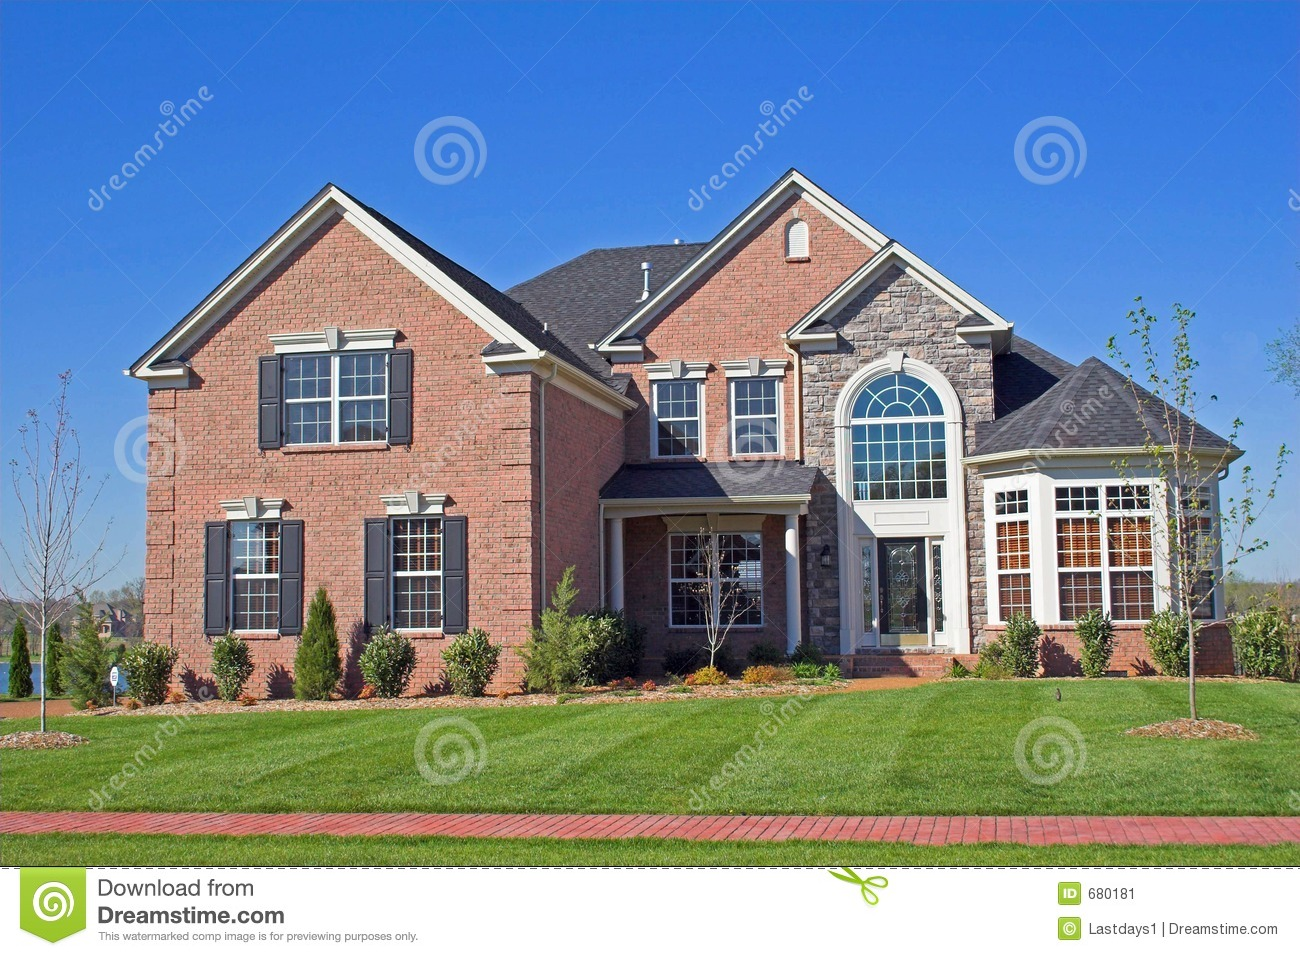 Beautiful homes series 1d stock image image 680181 for Ome images